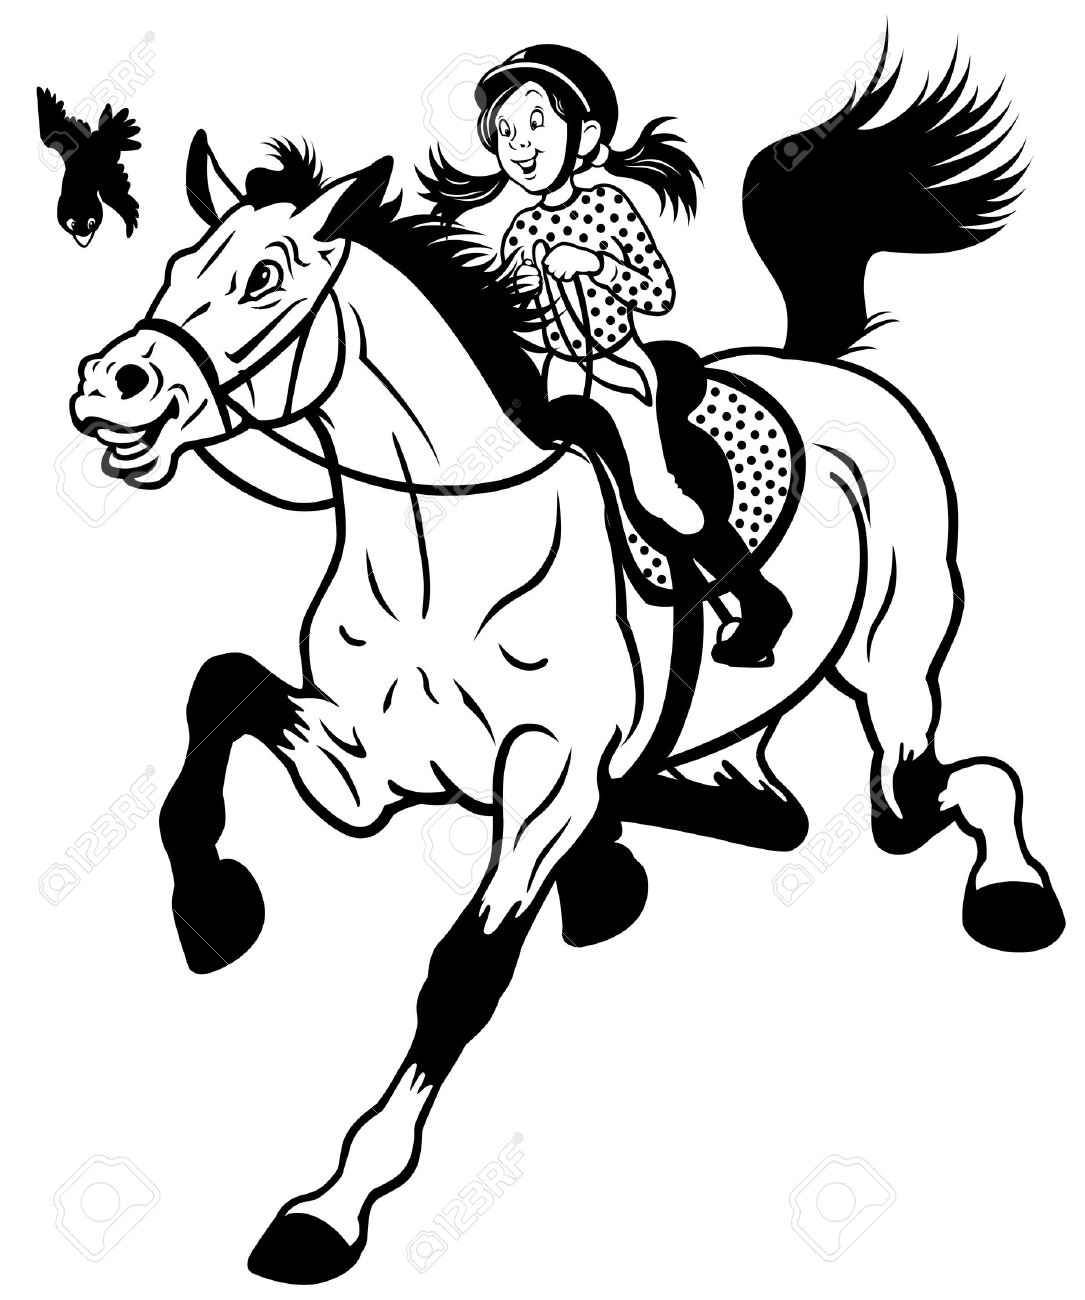 488 Horse Riding Girl Cliparts, Stock Vector And Royalty Free.